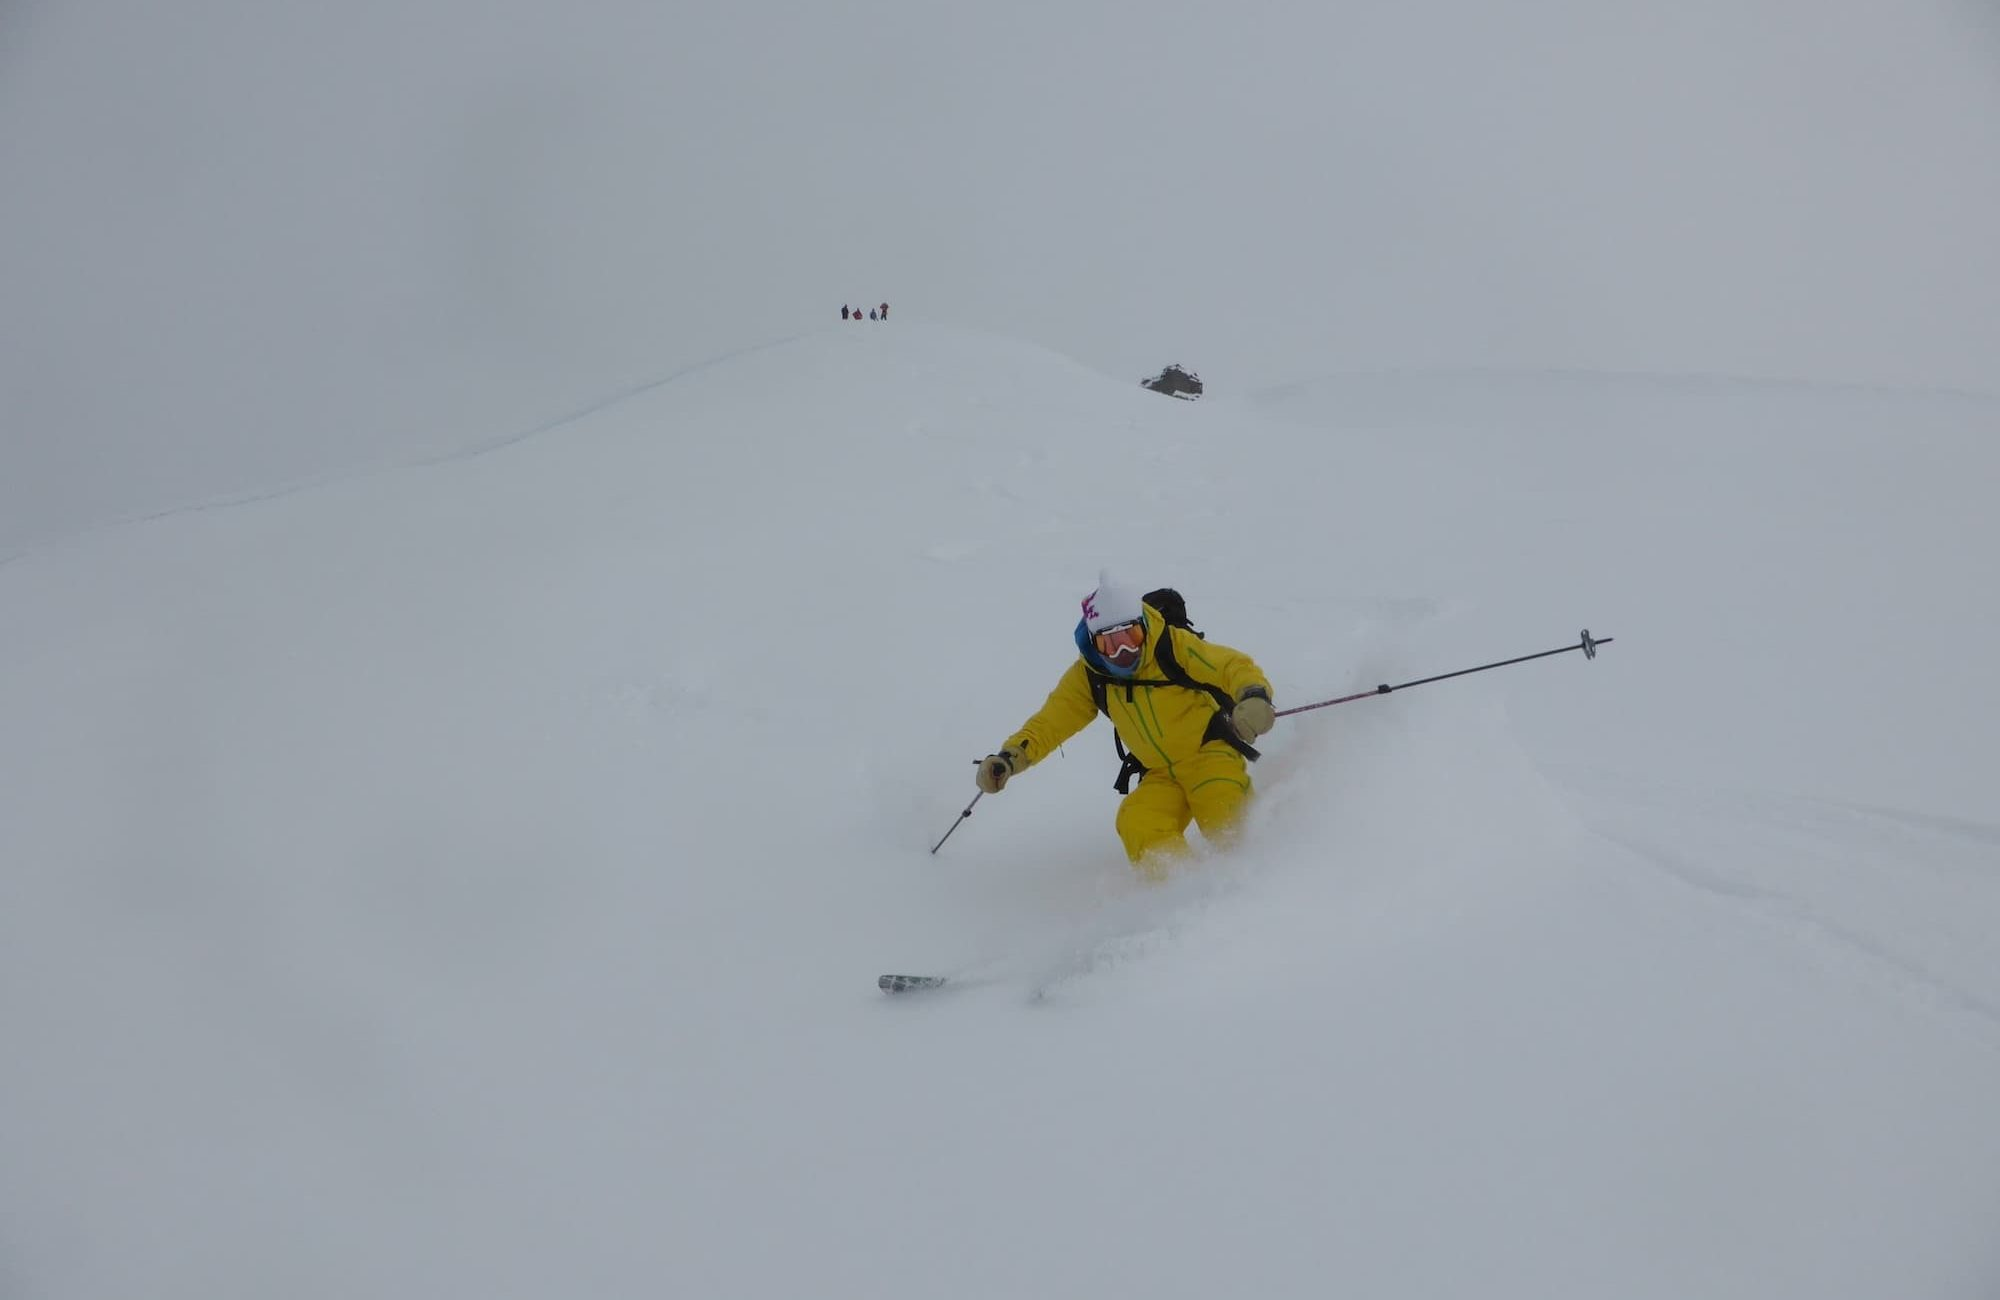 Backcountry Powder at Treble Cone